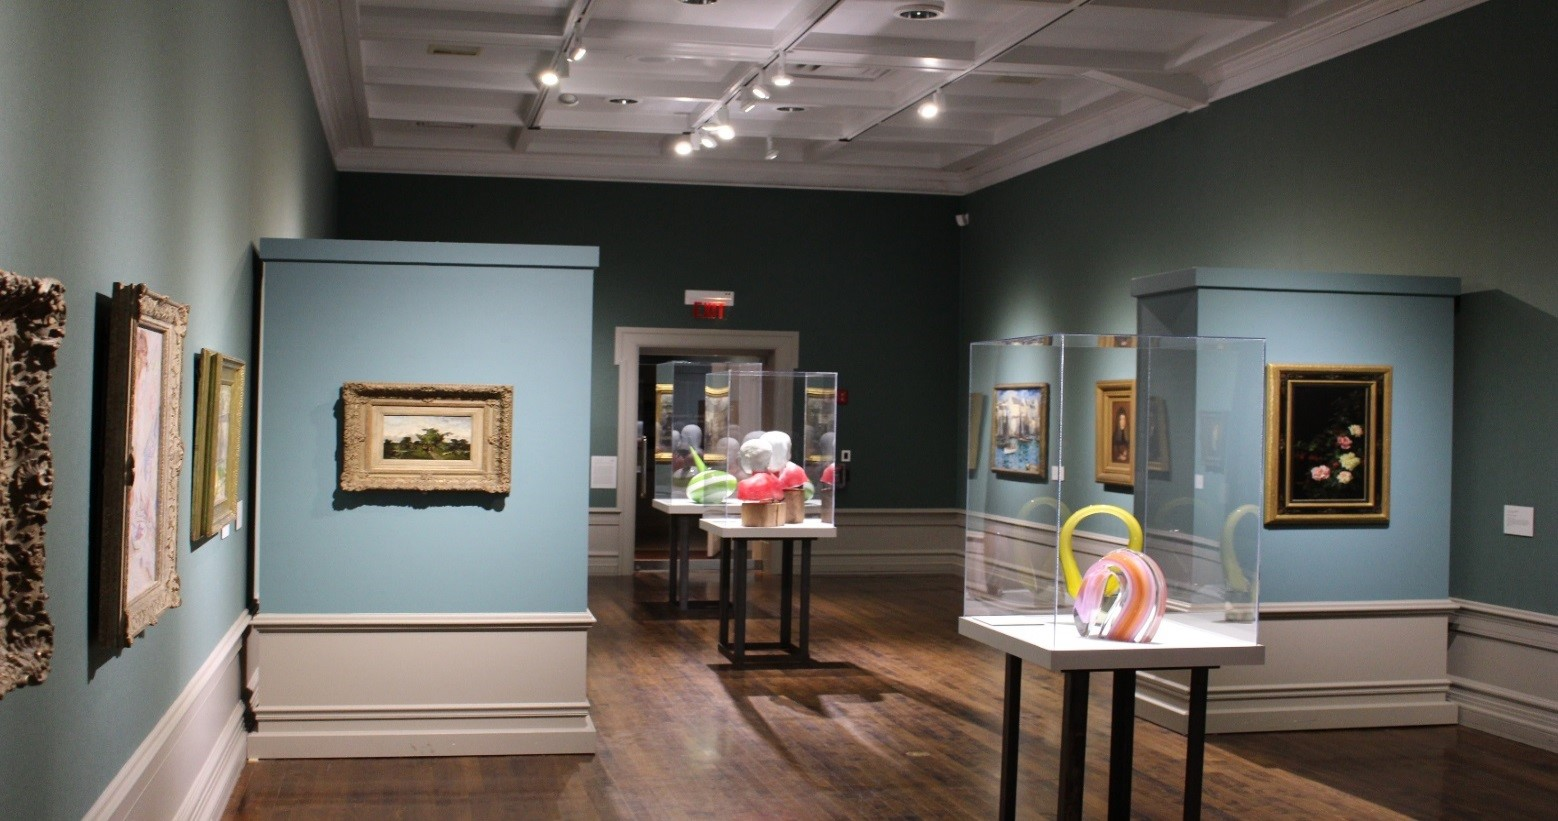 A Gallery in the Muskegon Museum of Art